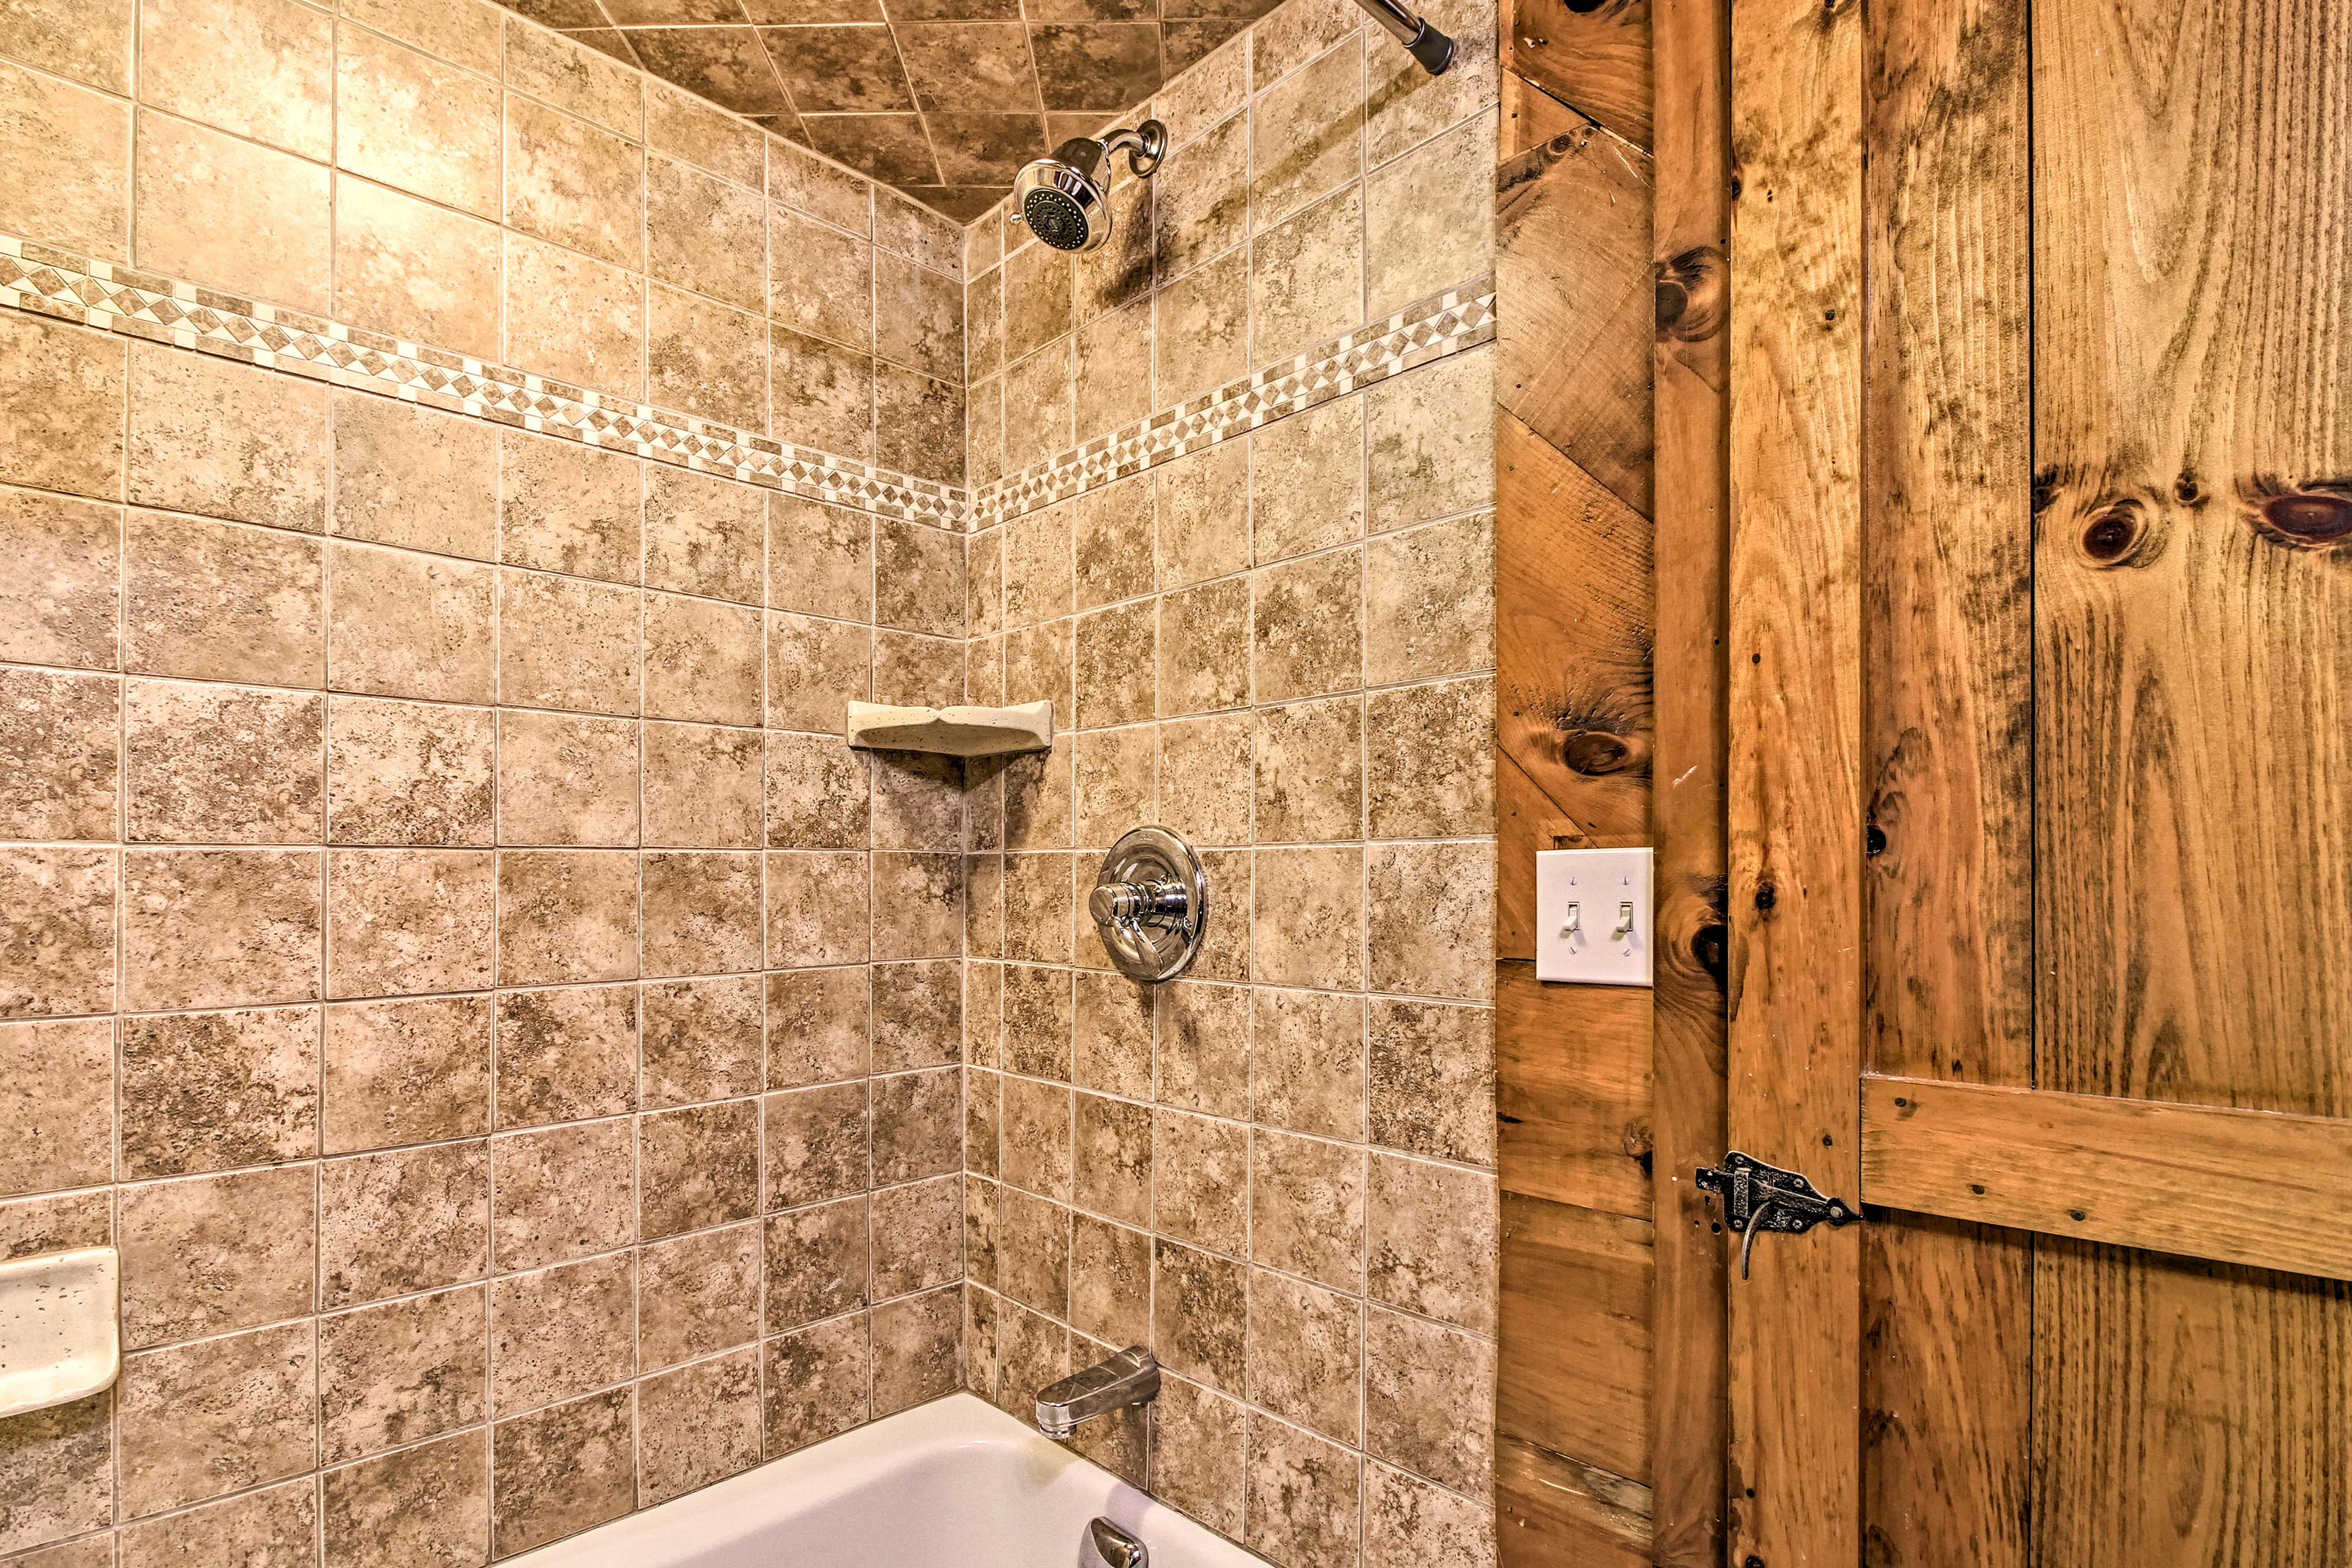 Rinse off in the tiled shower.